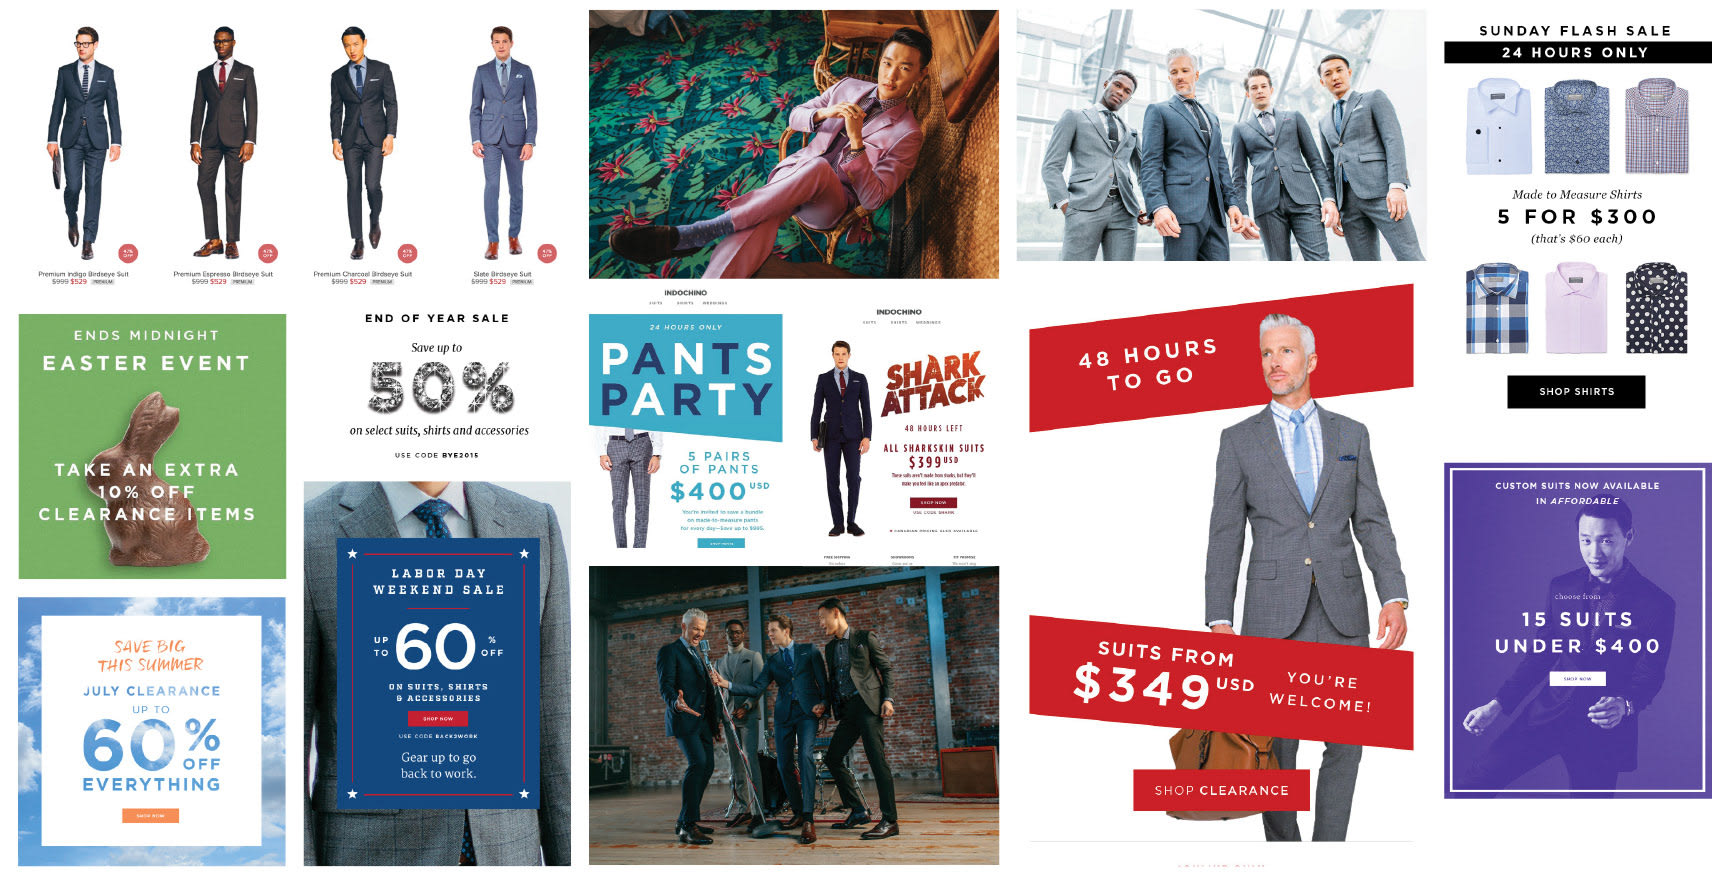 indochino_banners